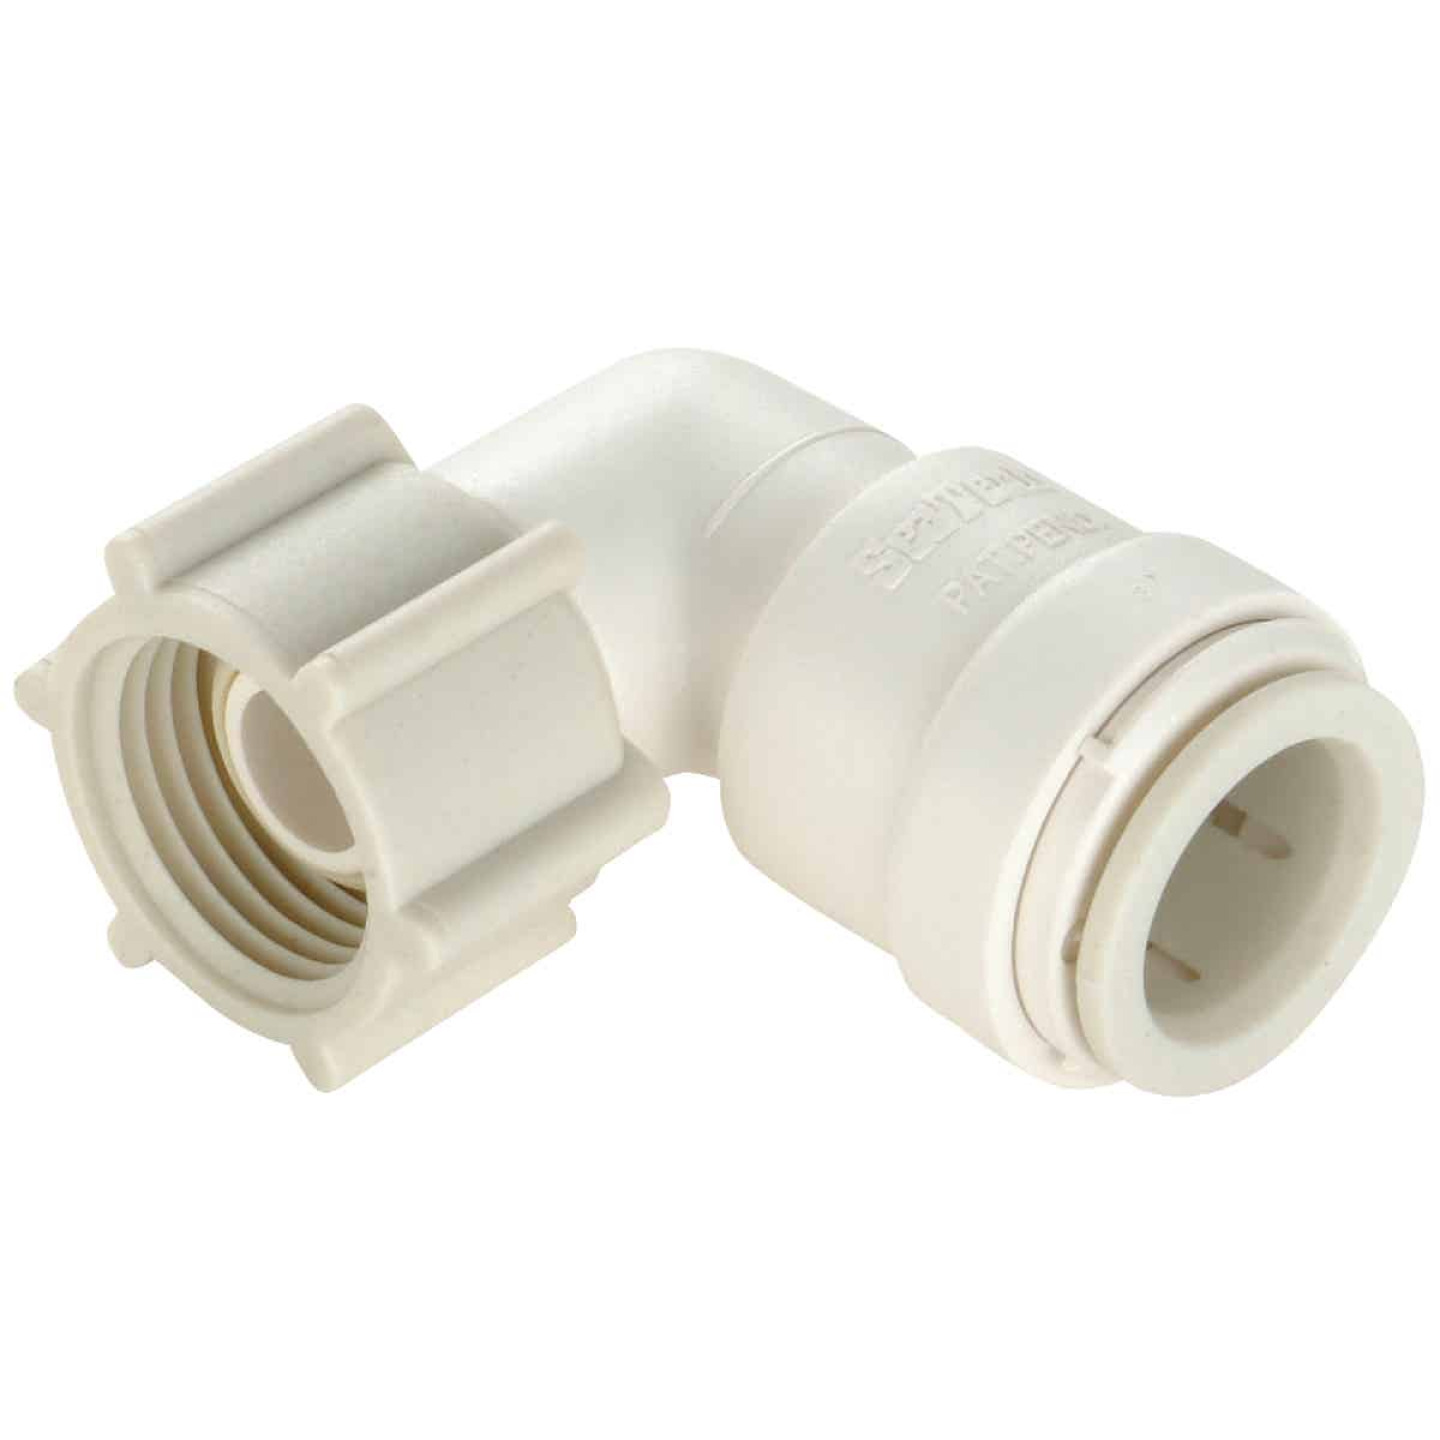 Watts 1/2 In. CTS x 7/8 In. BC 90 Deg. Quick Connect Plastic Elbow (1/4 Bend) Image 1